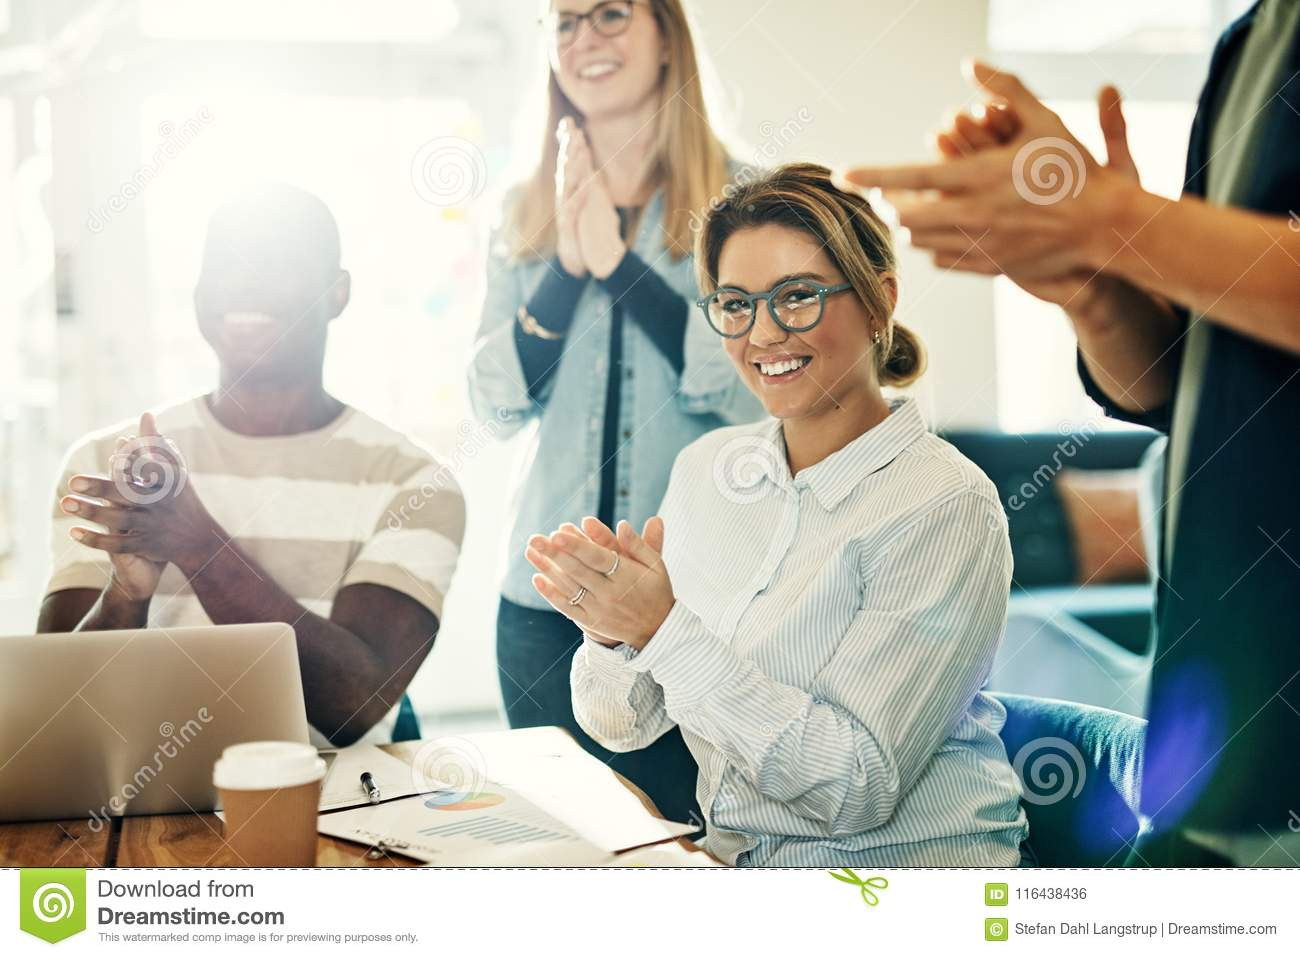 Smiling young woman clapping with colleagues in a modern office